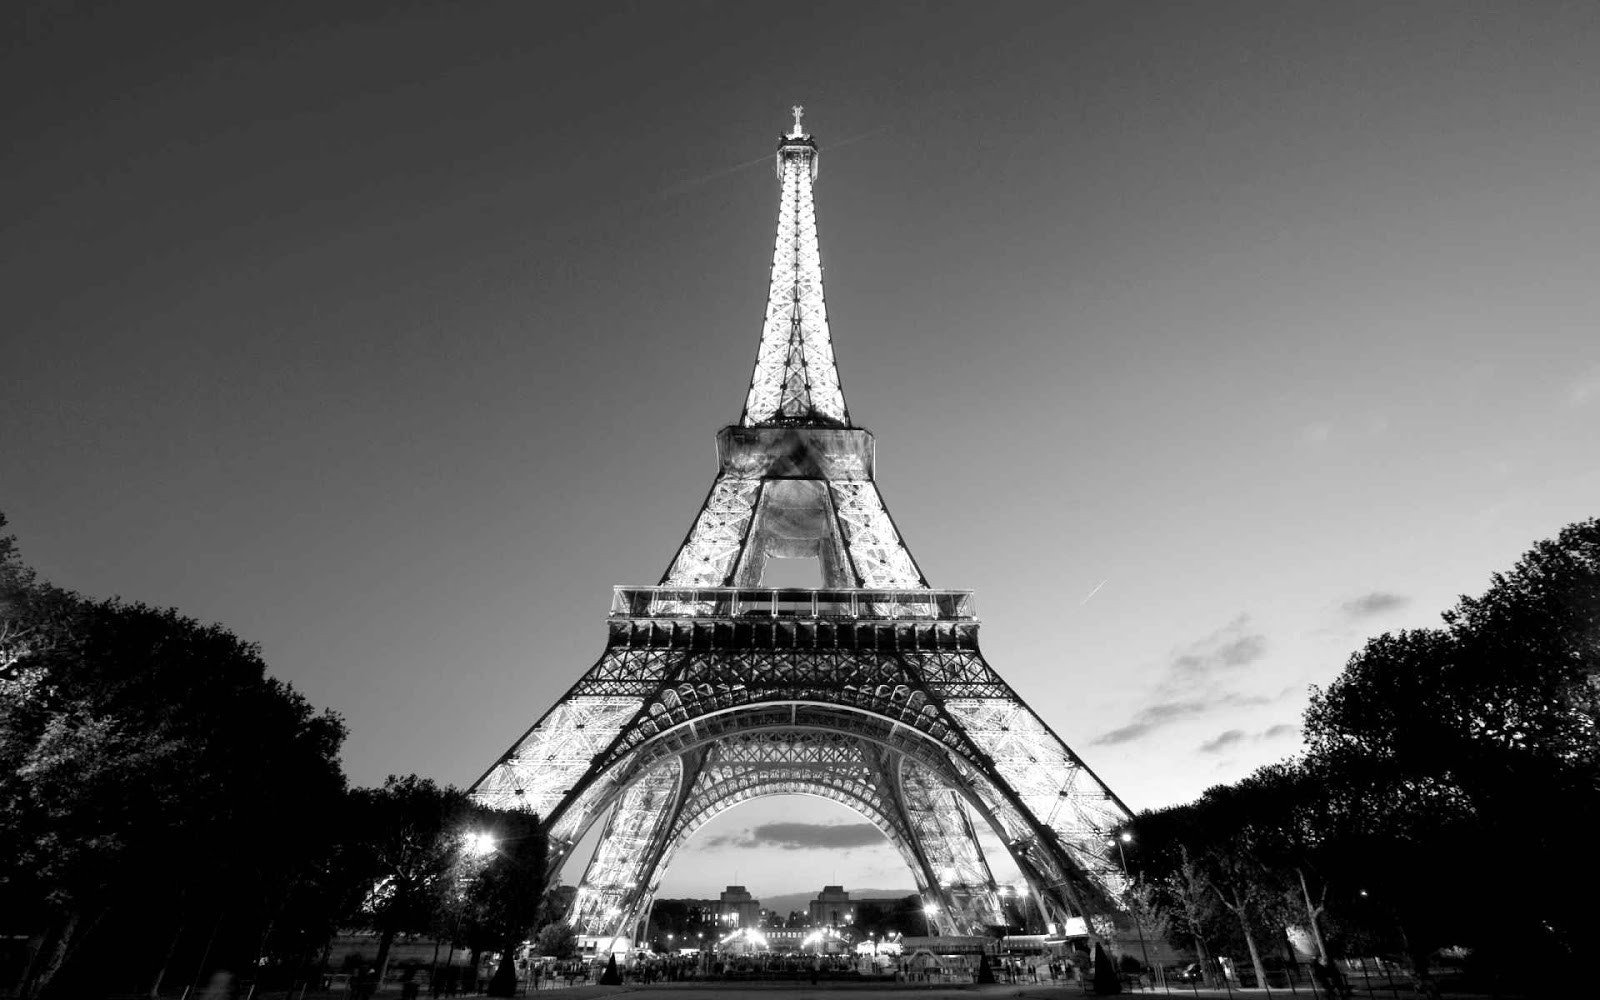 Black and white paris wallpaper wallpapersafari for Eiffel tower wall mural black and white